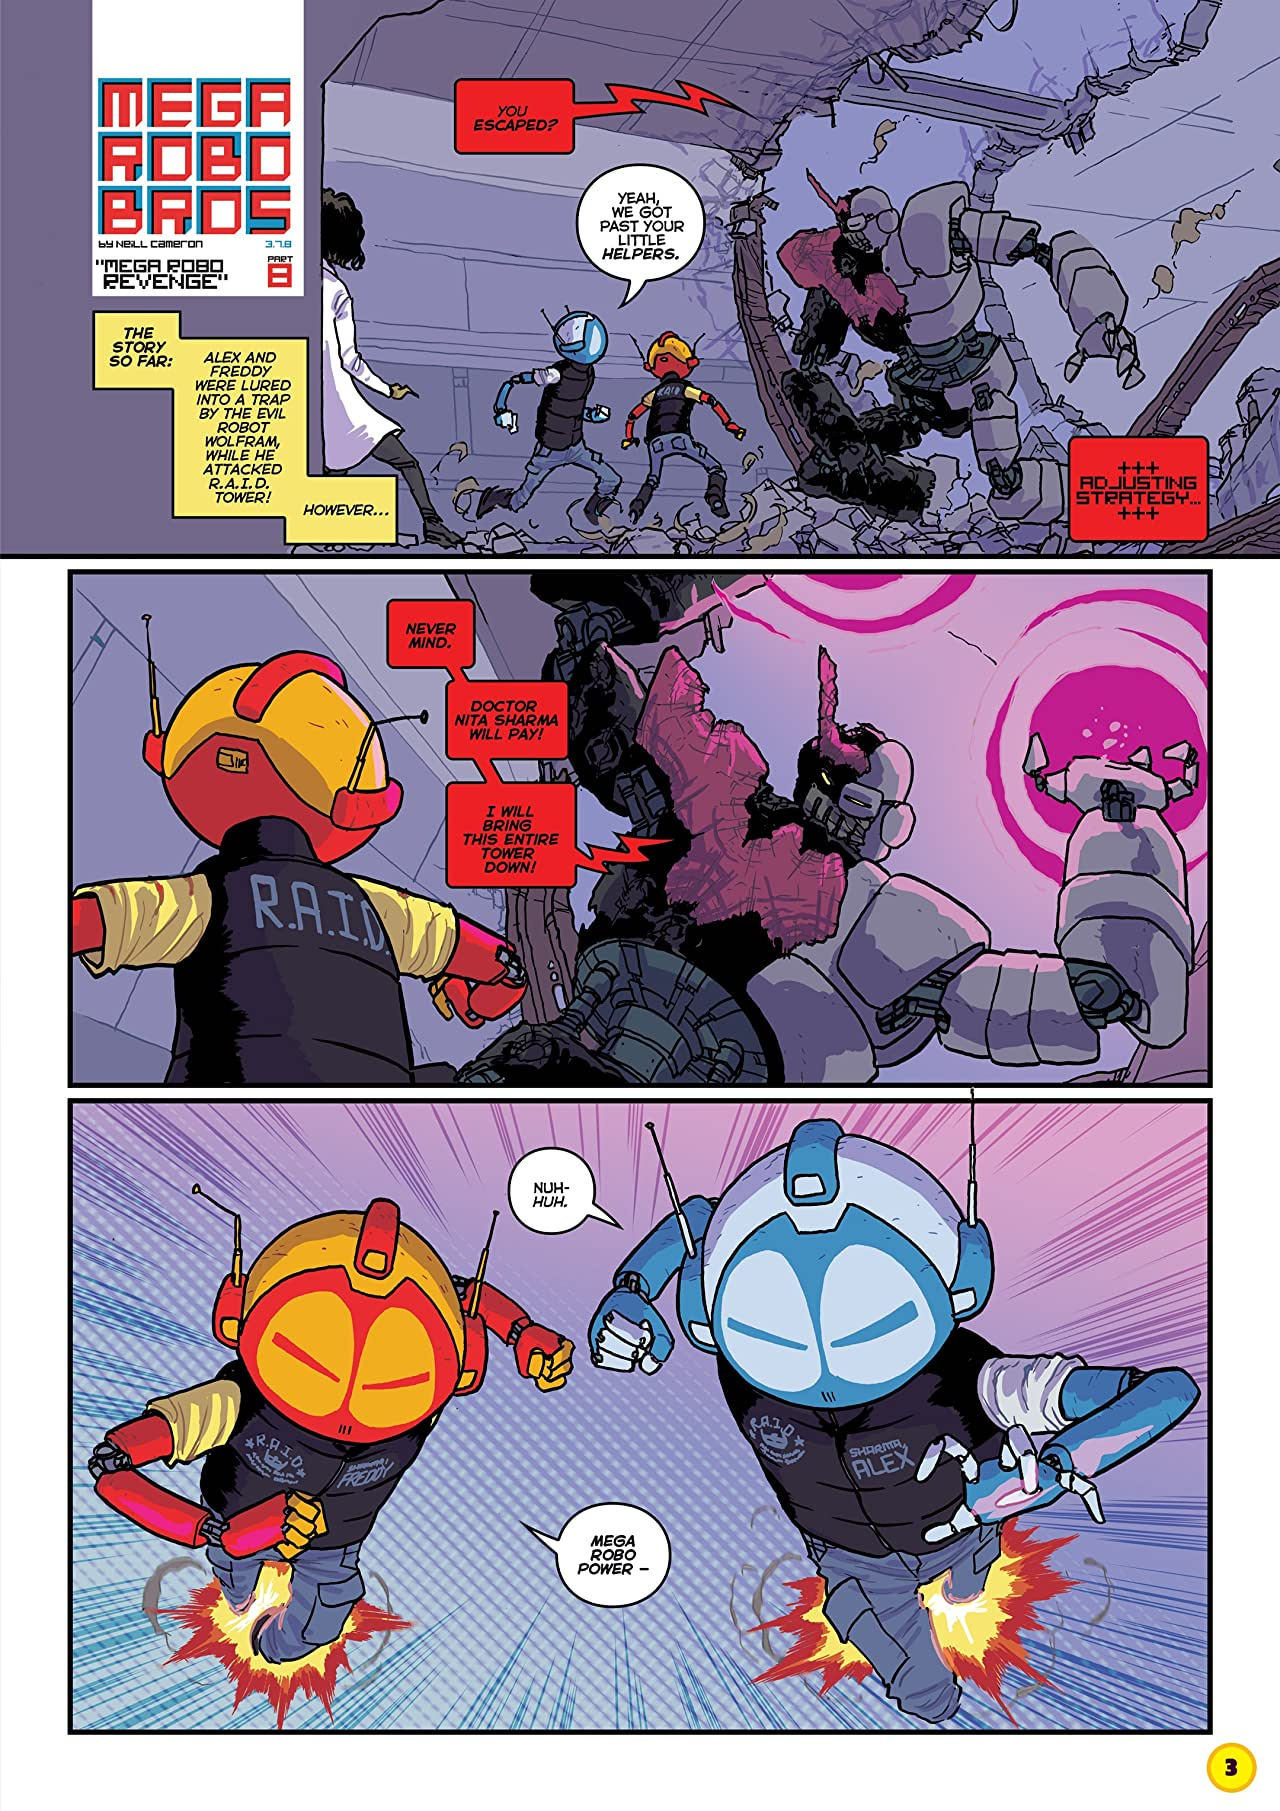 The Phoenix #275: The Weekly Story Comic